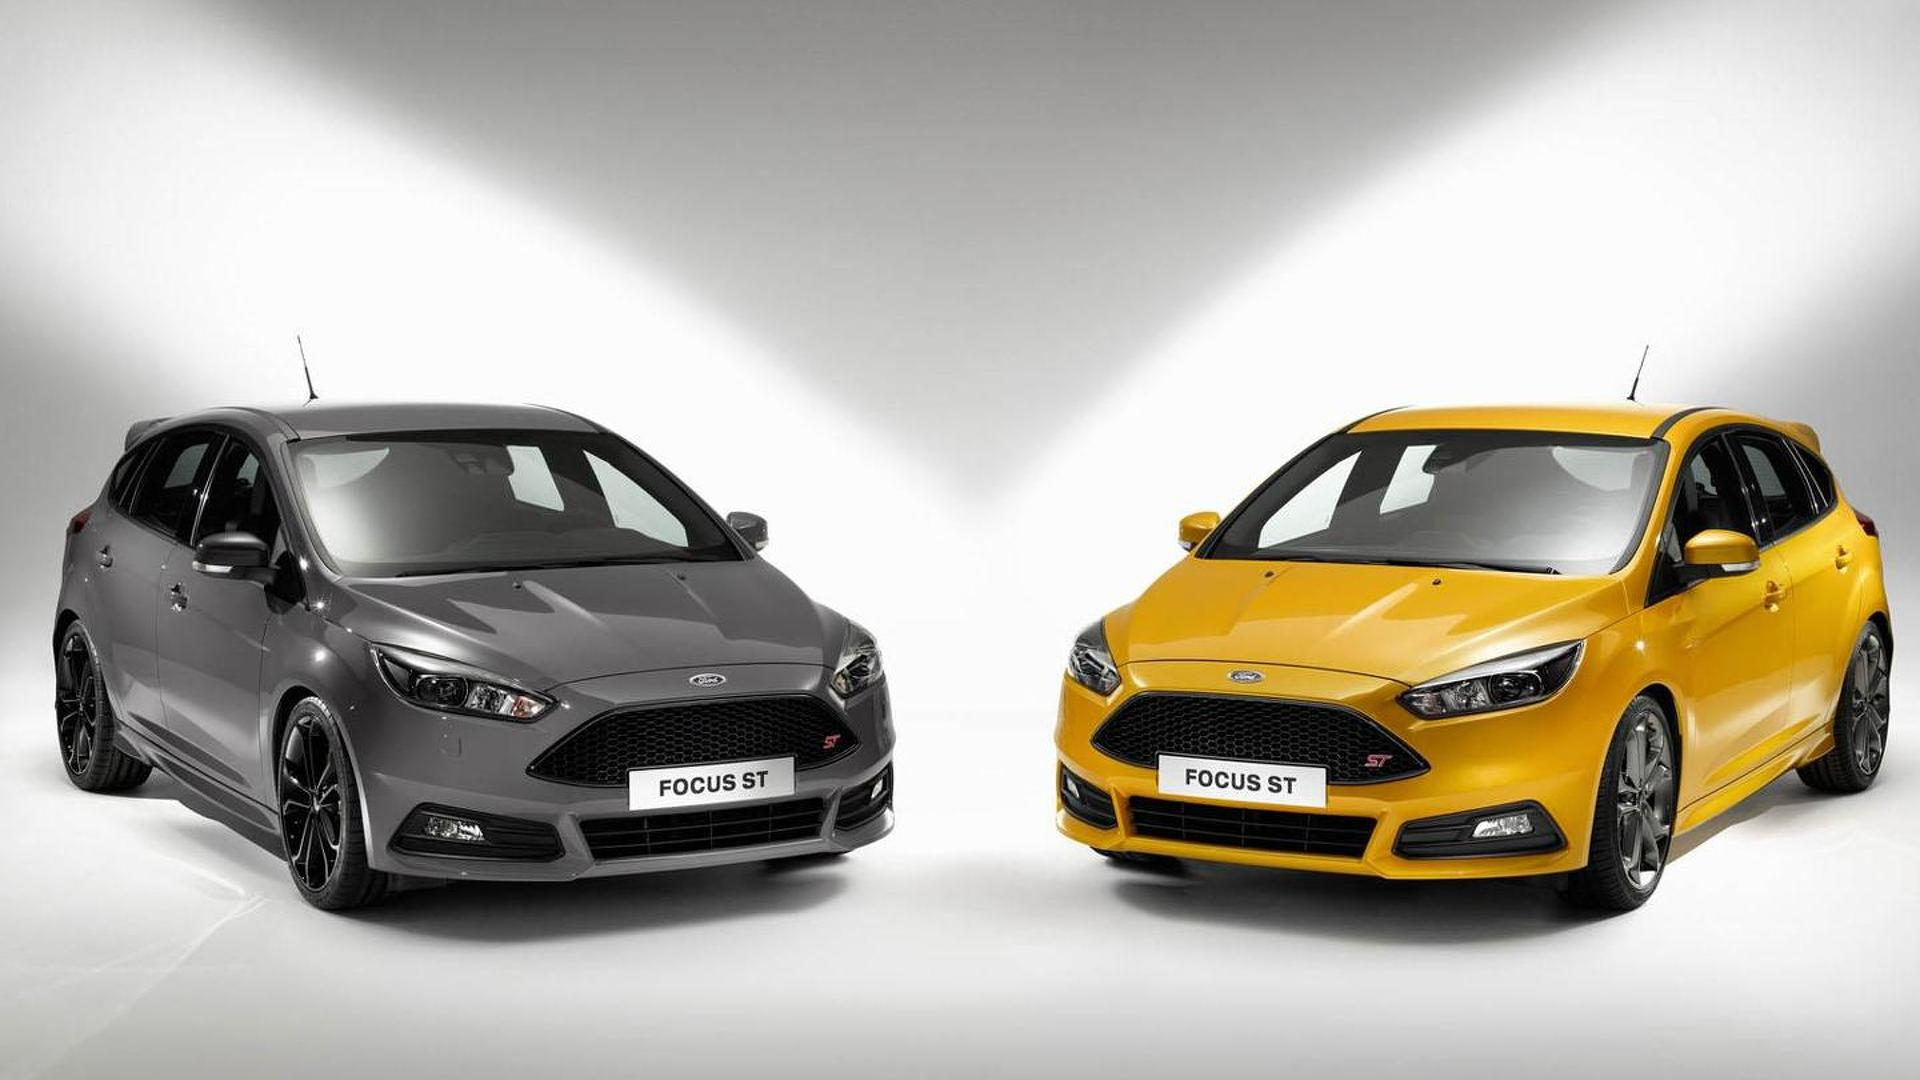 2015 ford focus st unveiled with revised styling new diesel engine